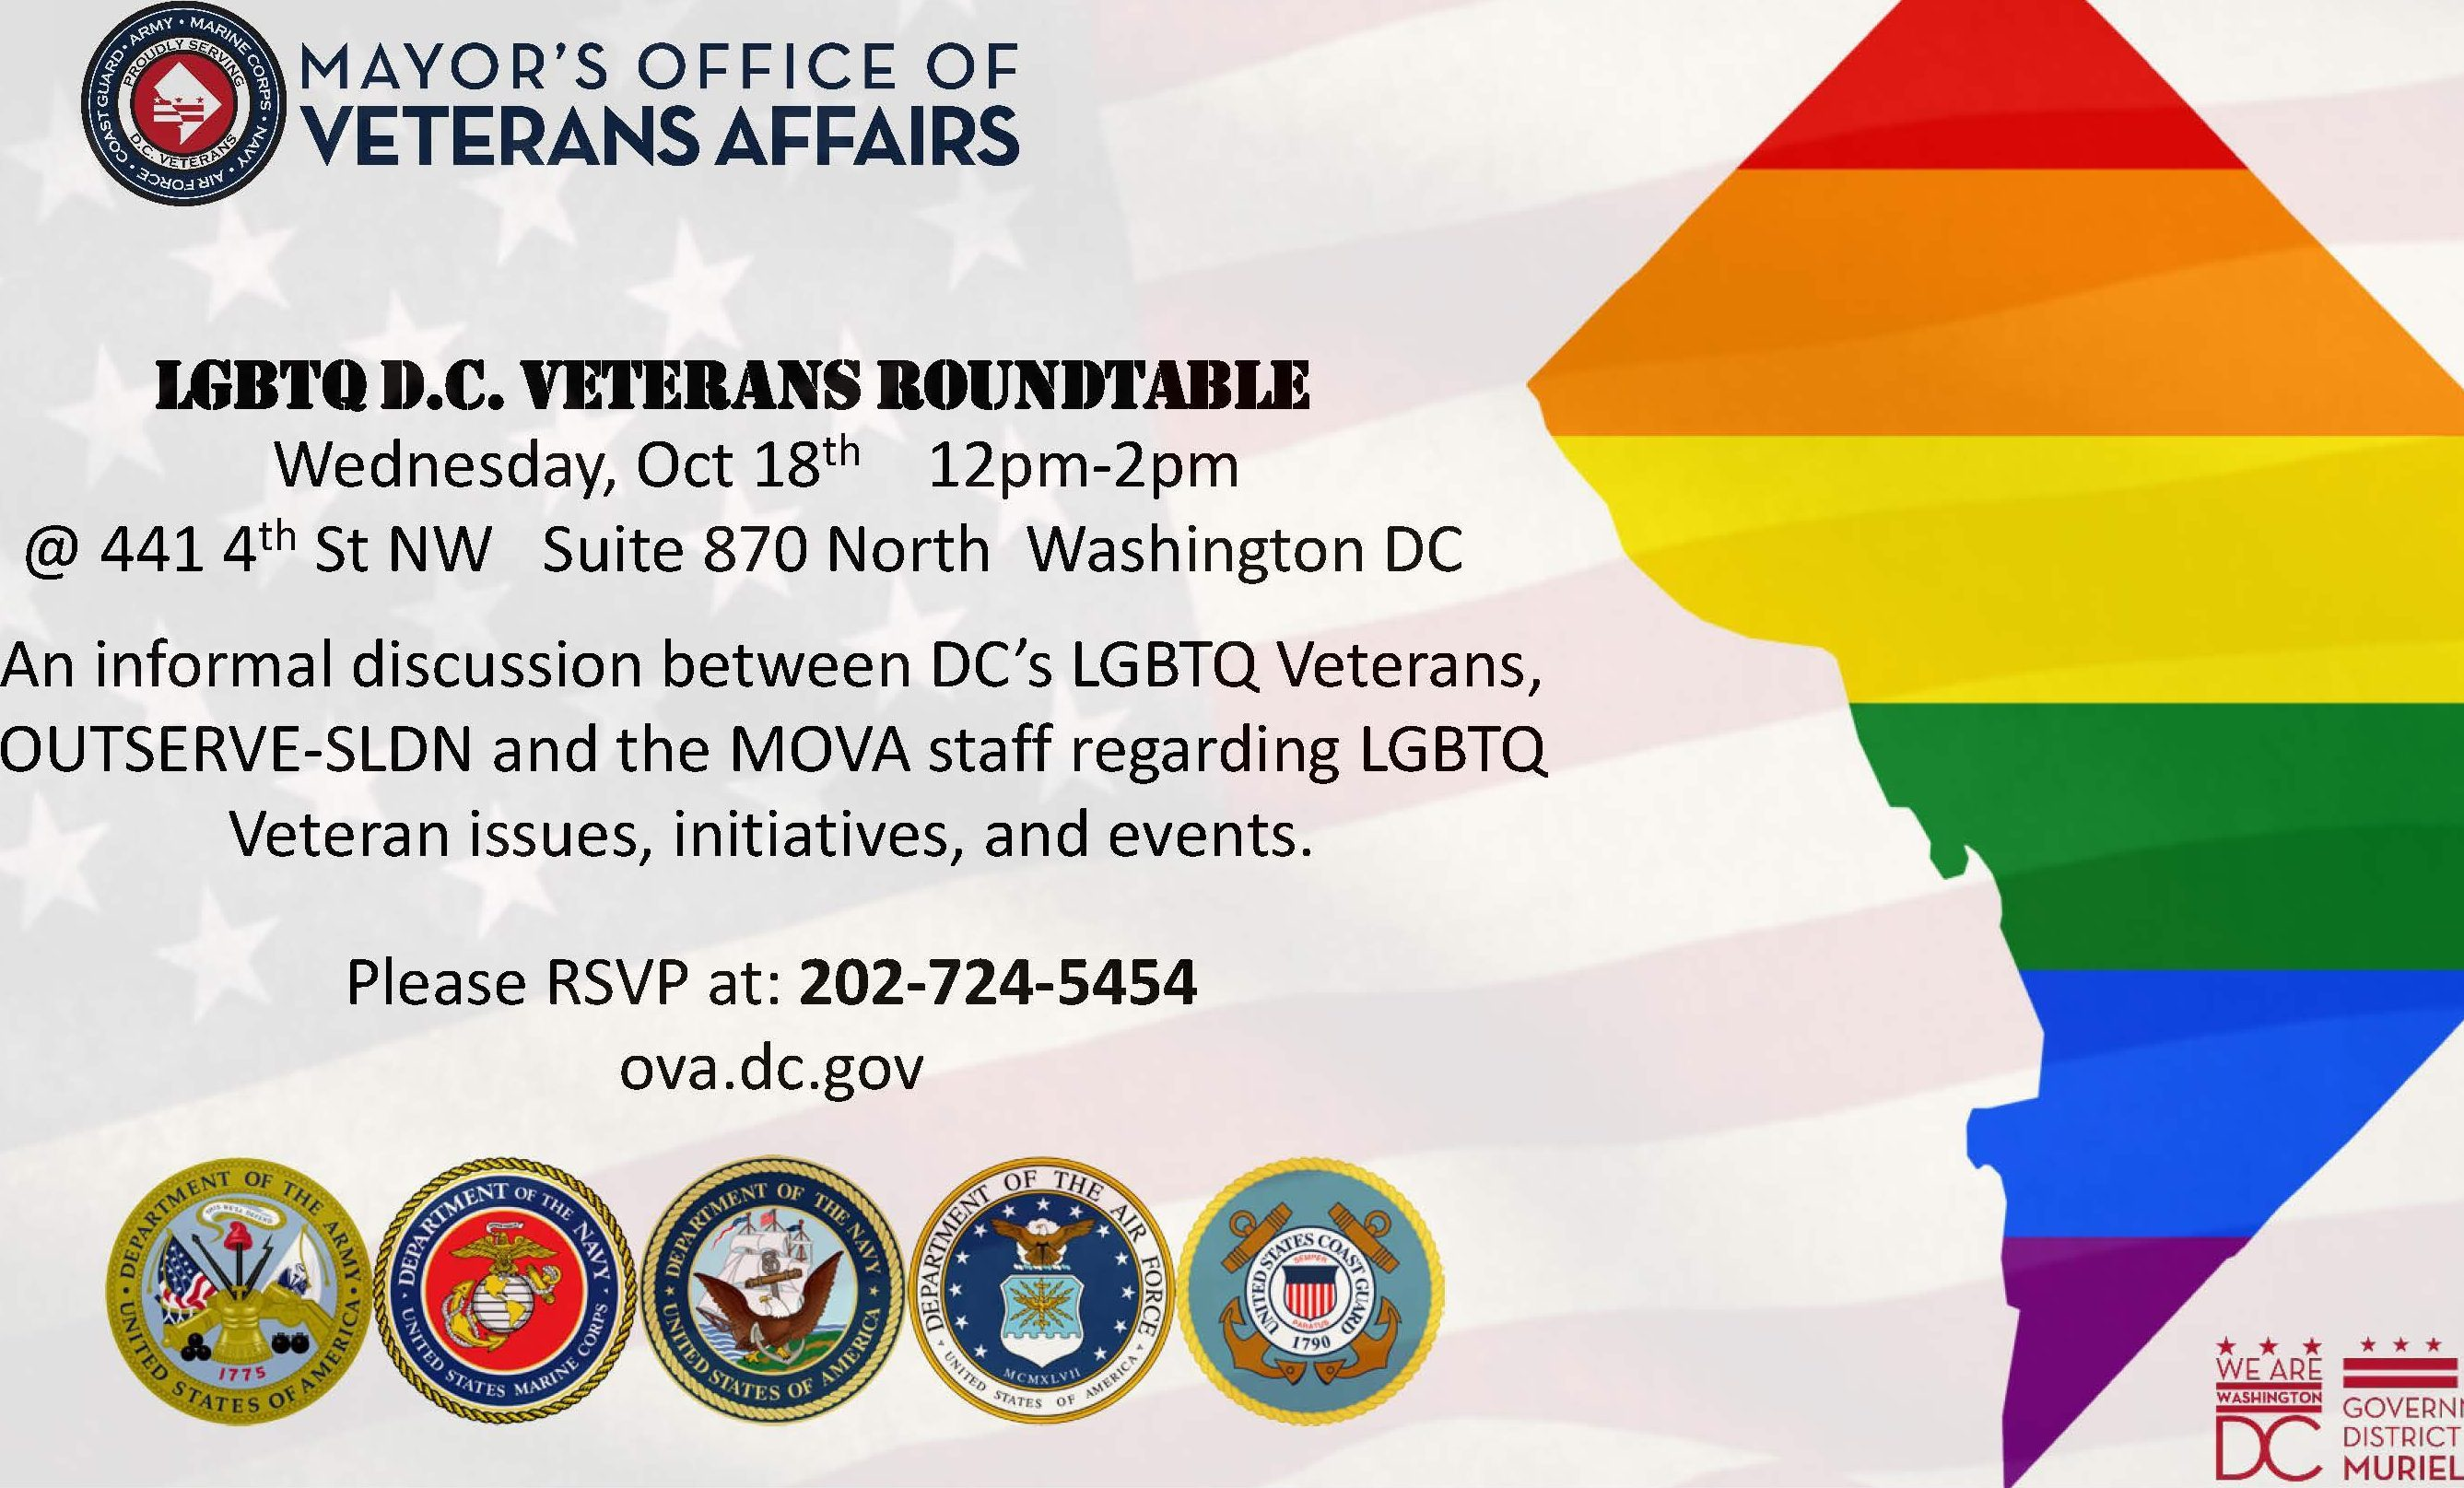 LGBTQ Veterans Roundtable